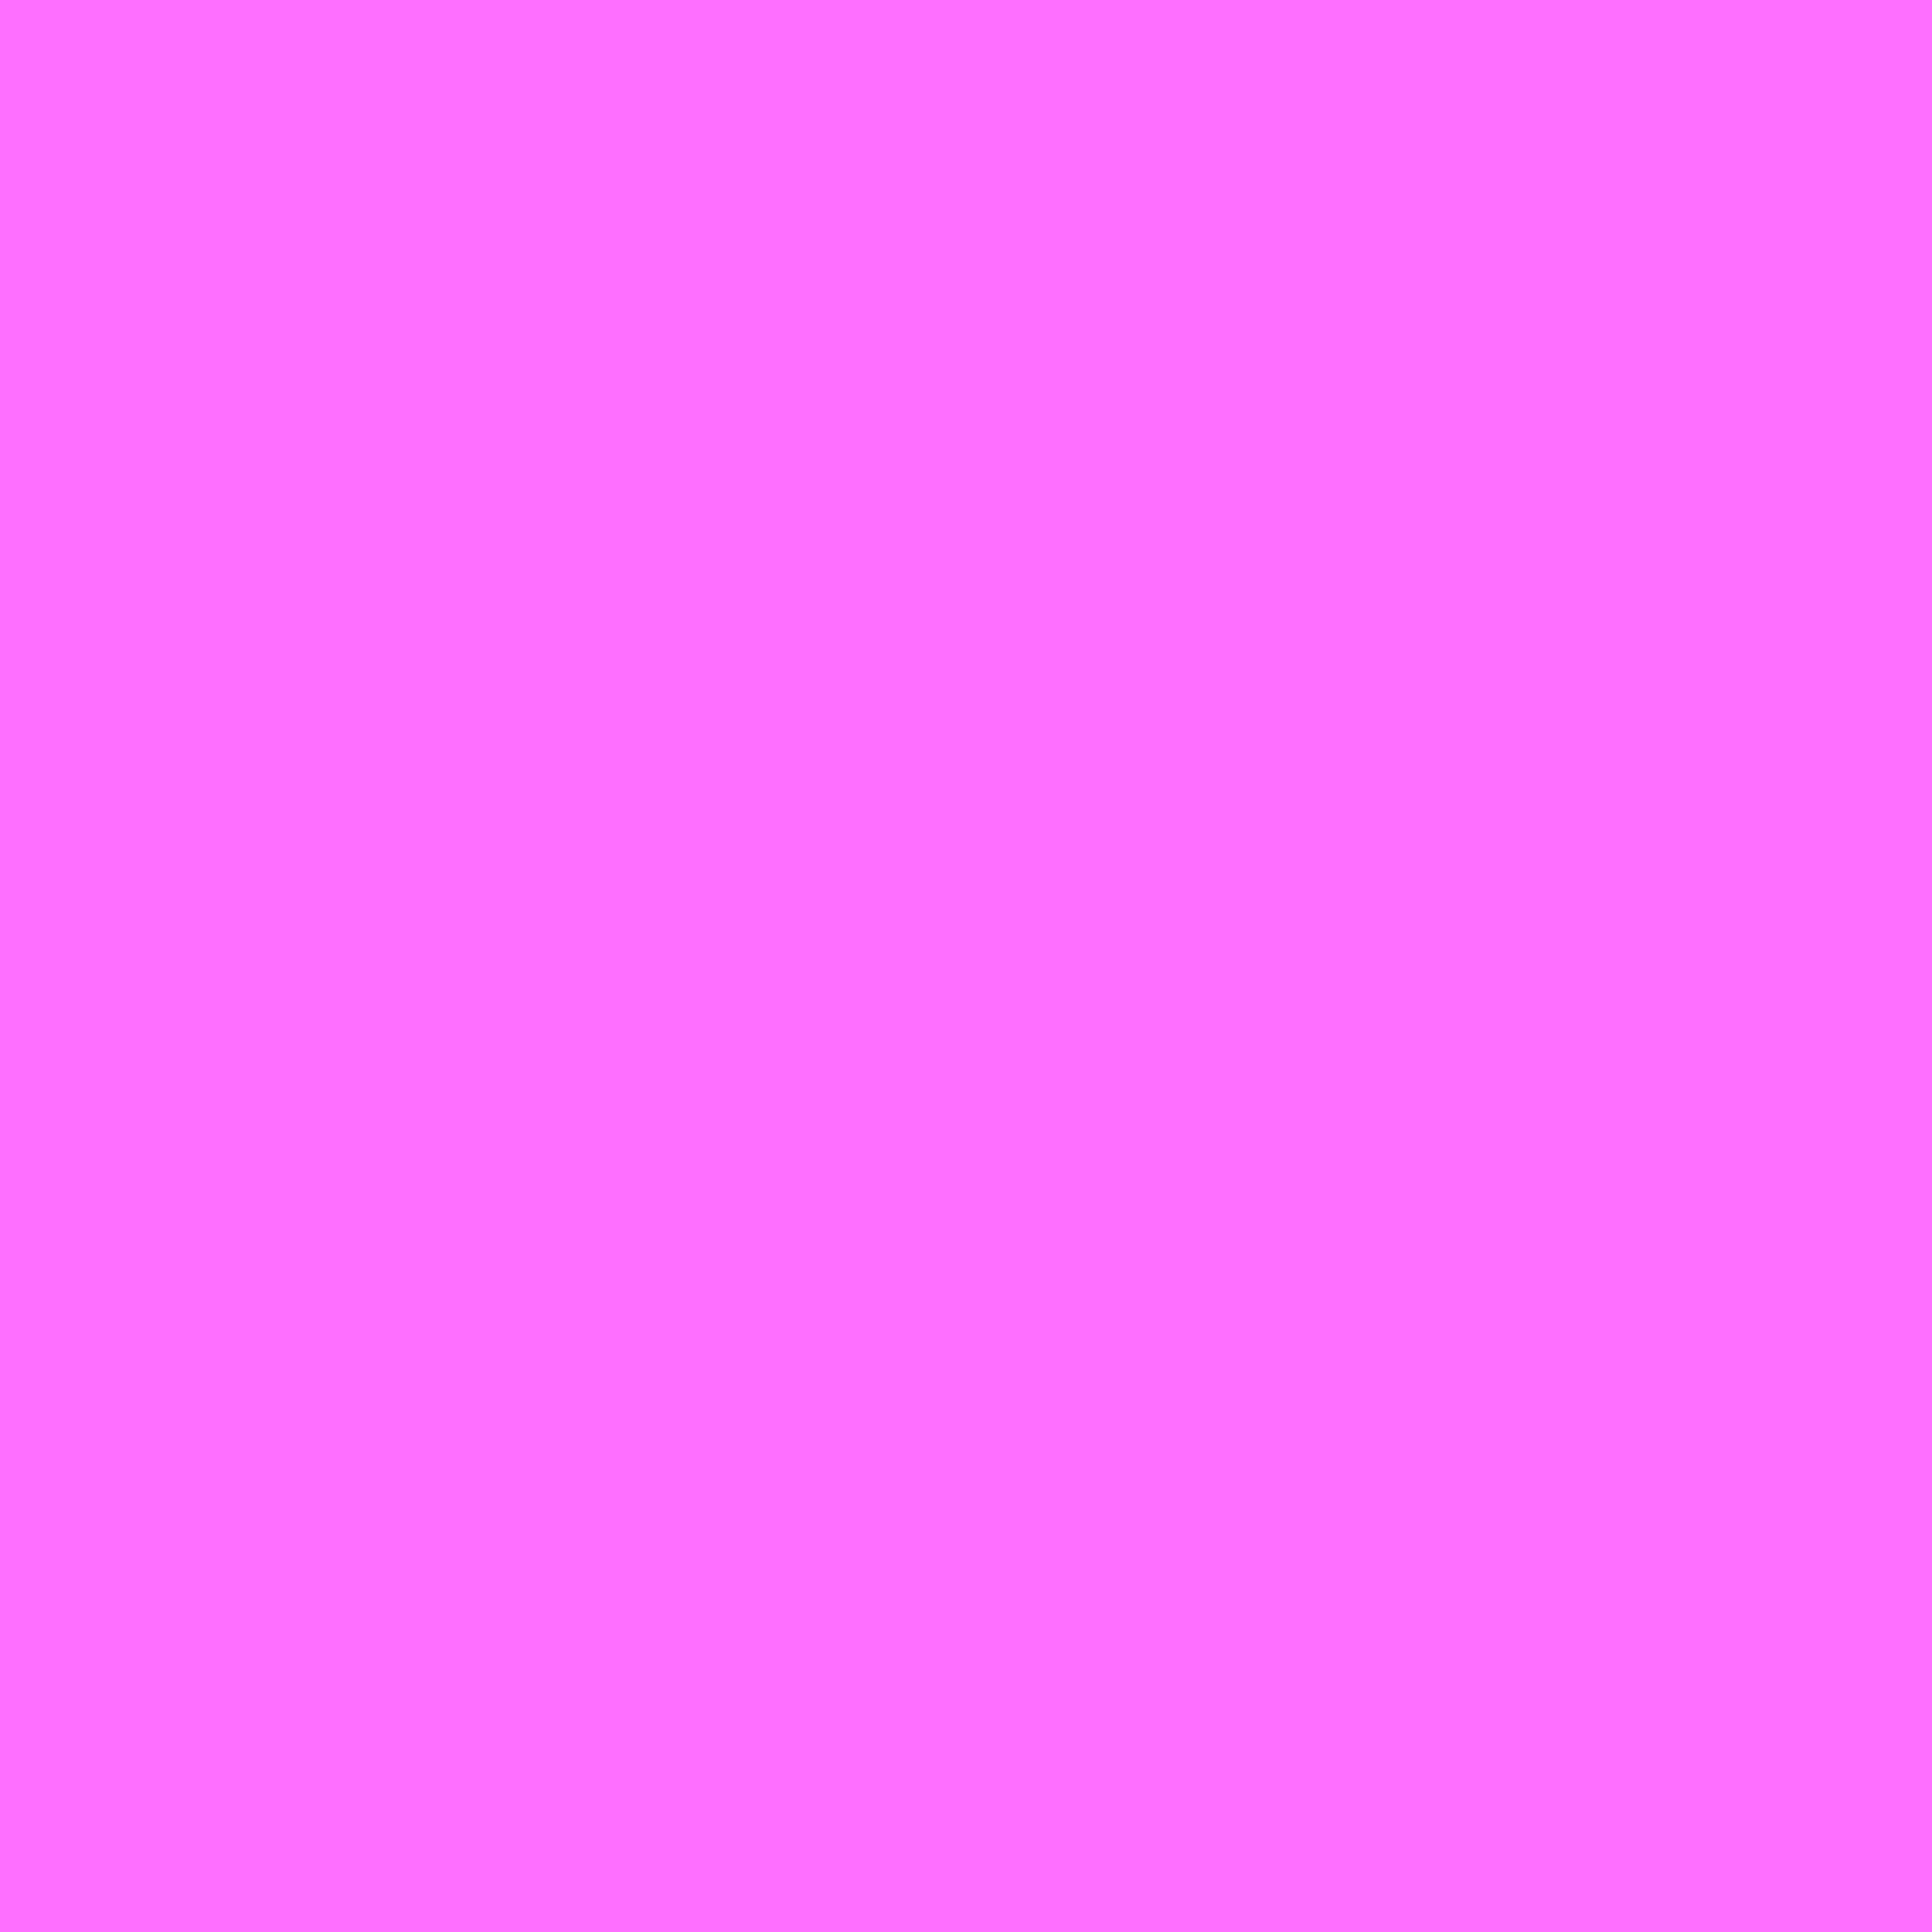 2732x2732 Ultra Pink Solid Color Background